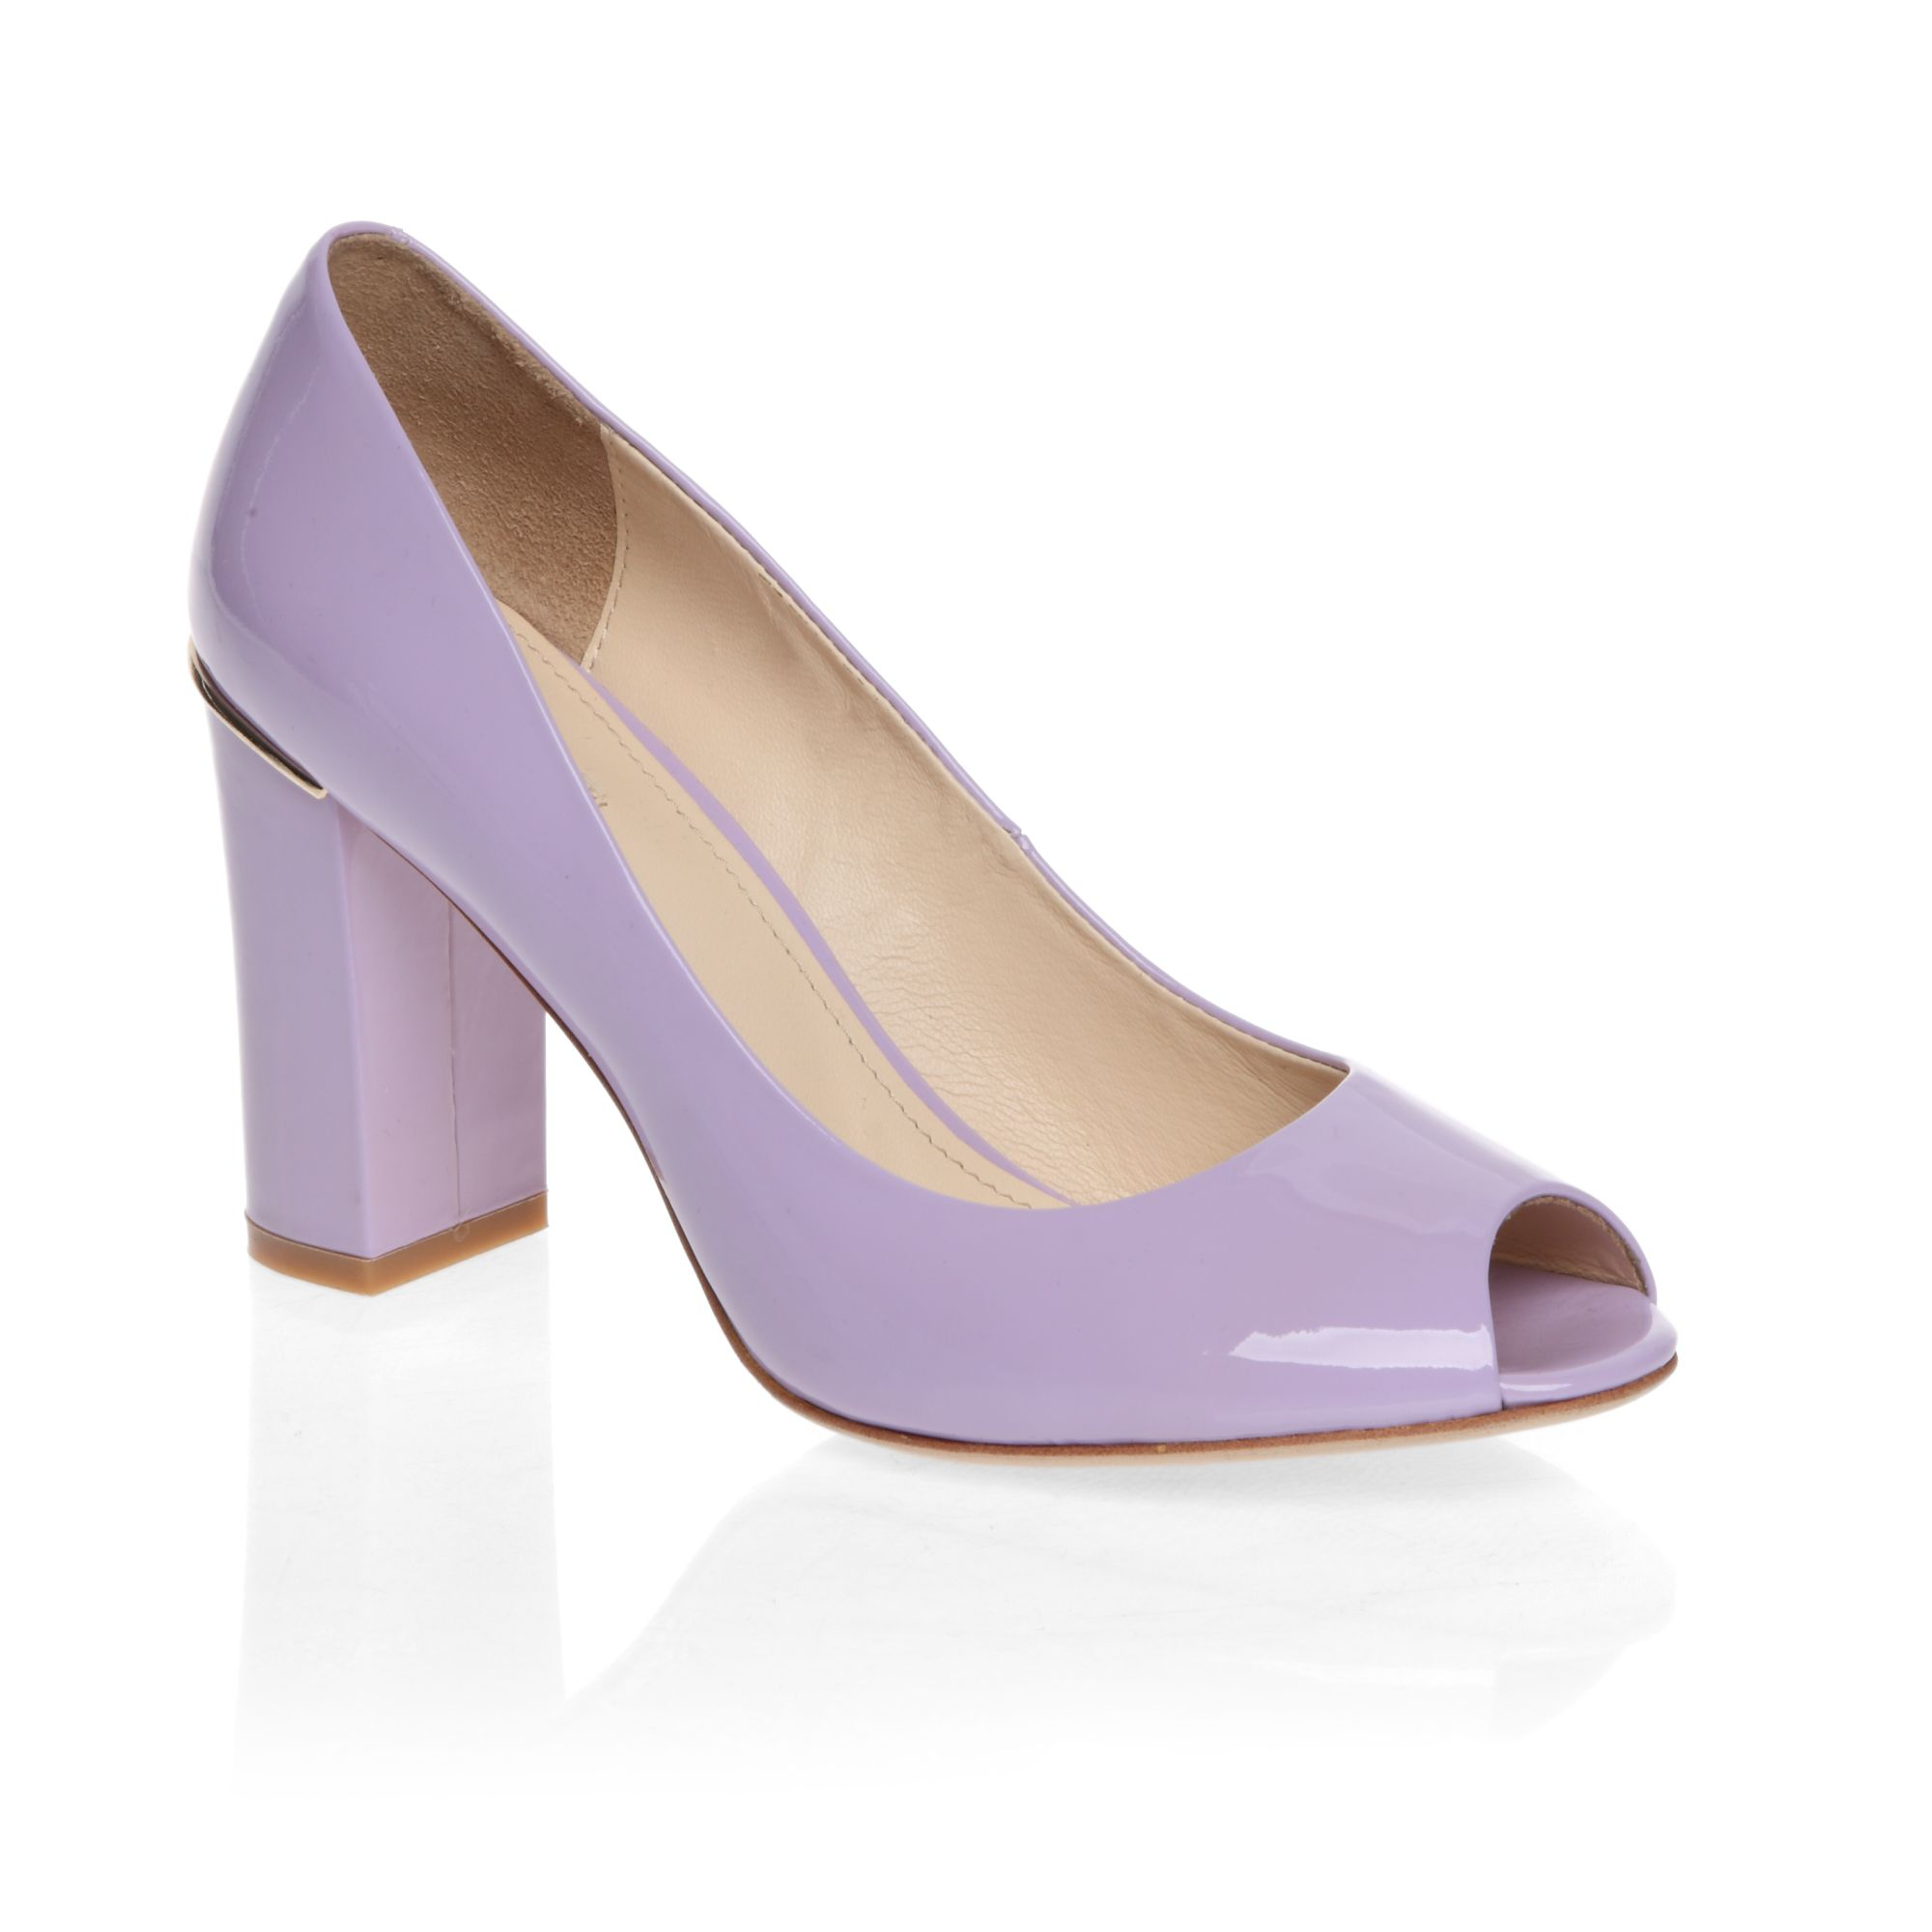 Classic mid heeled peep toe patent court shoes